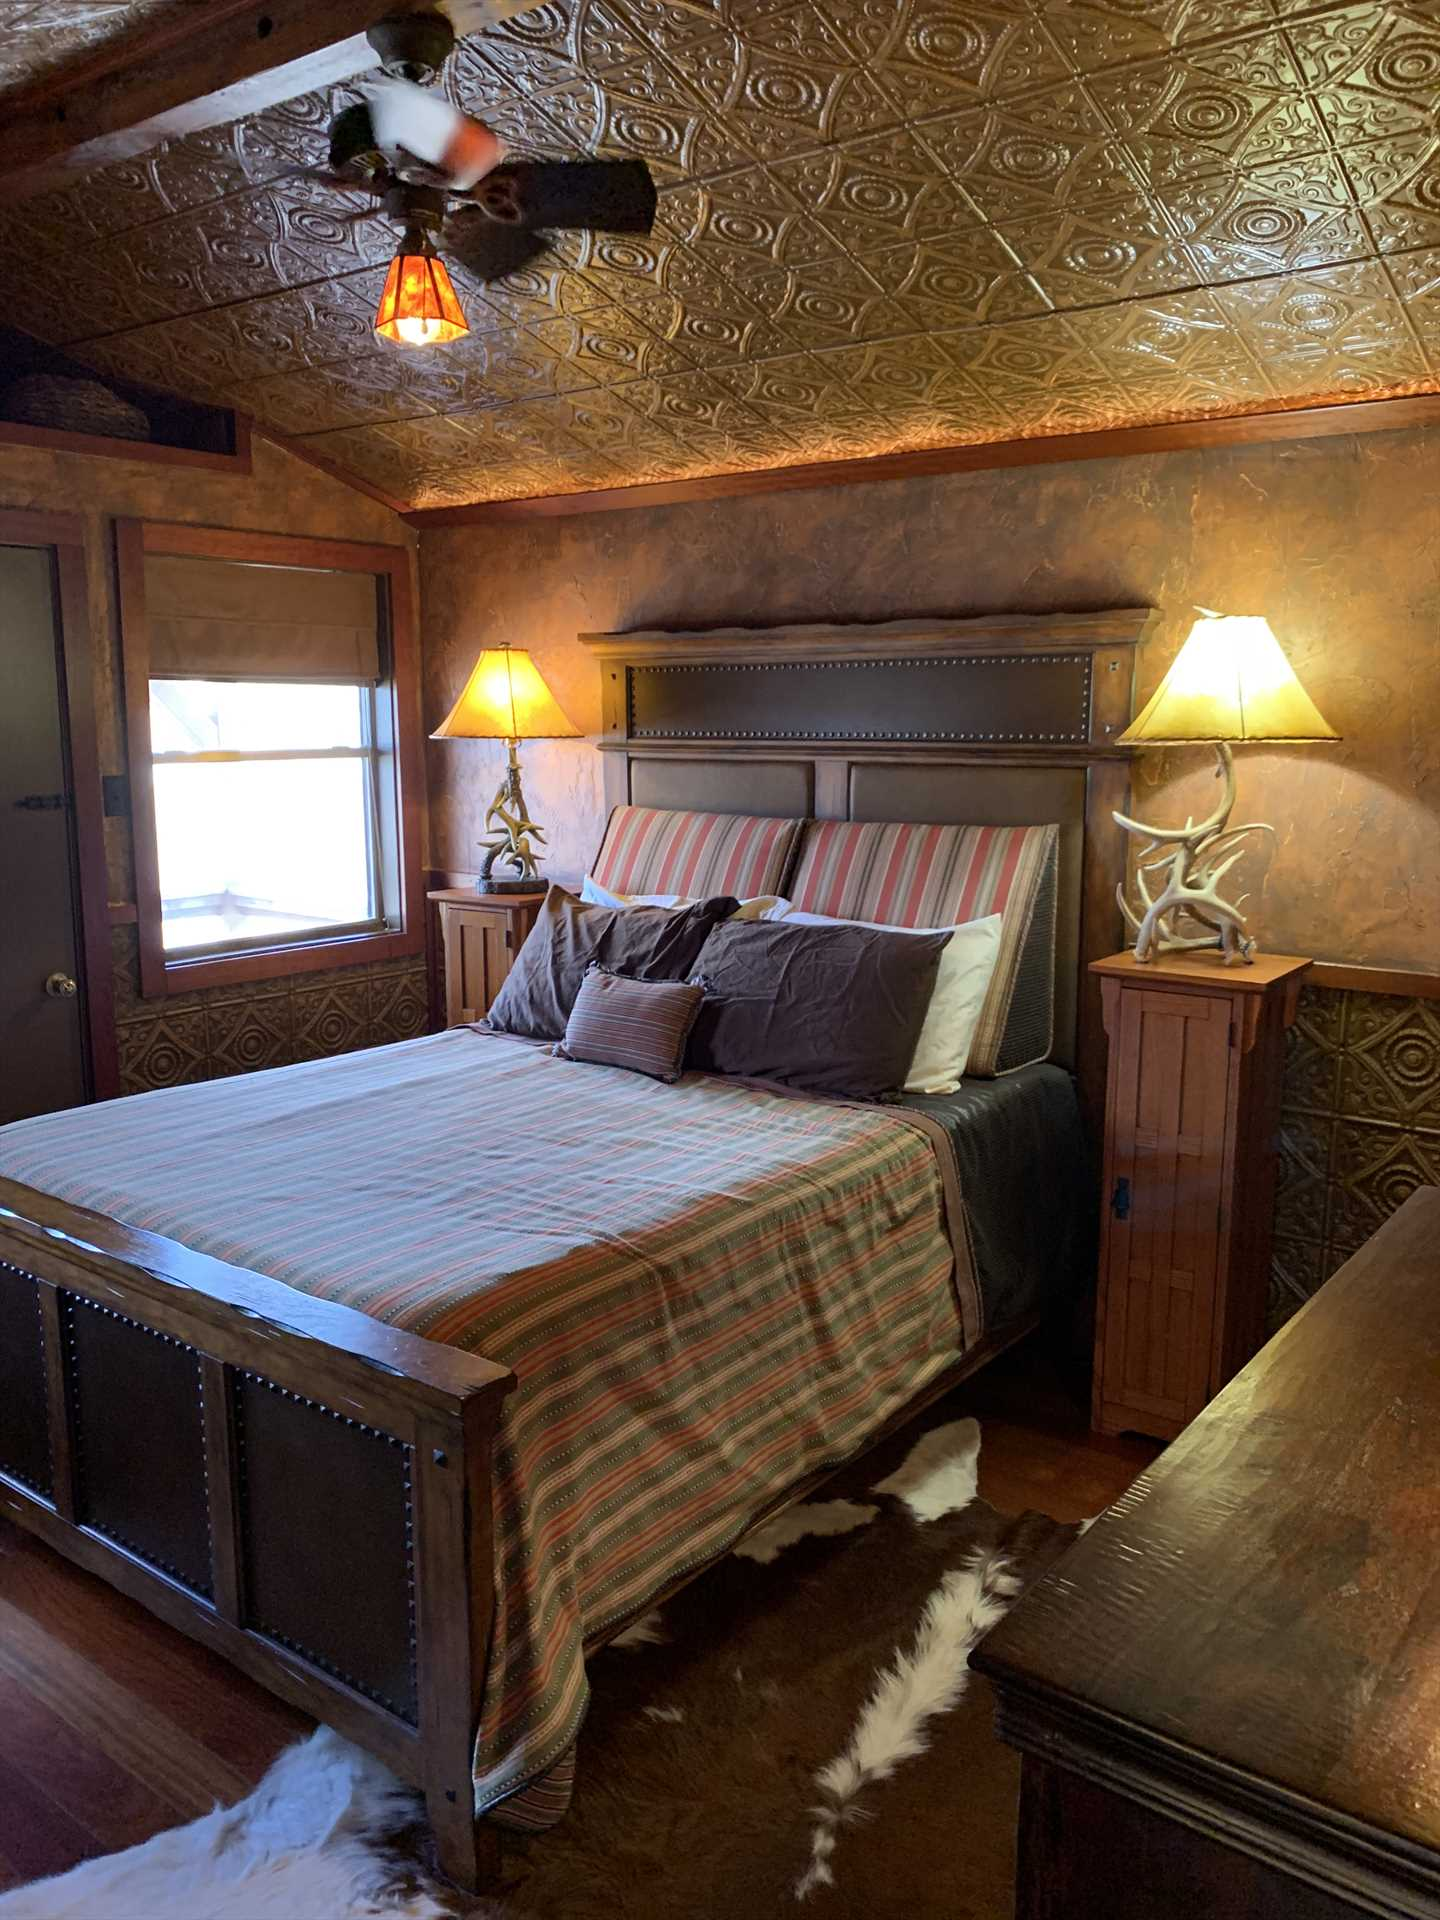 Rest your head in incomparable country comfort on the big queen-sized bed! Clean bed and bath linens are provided for your stay, as well.